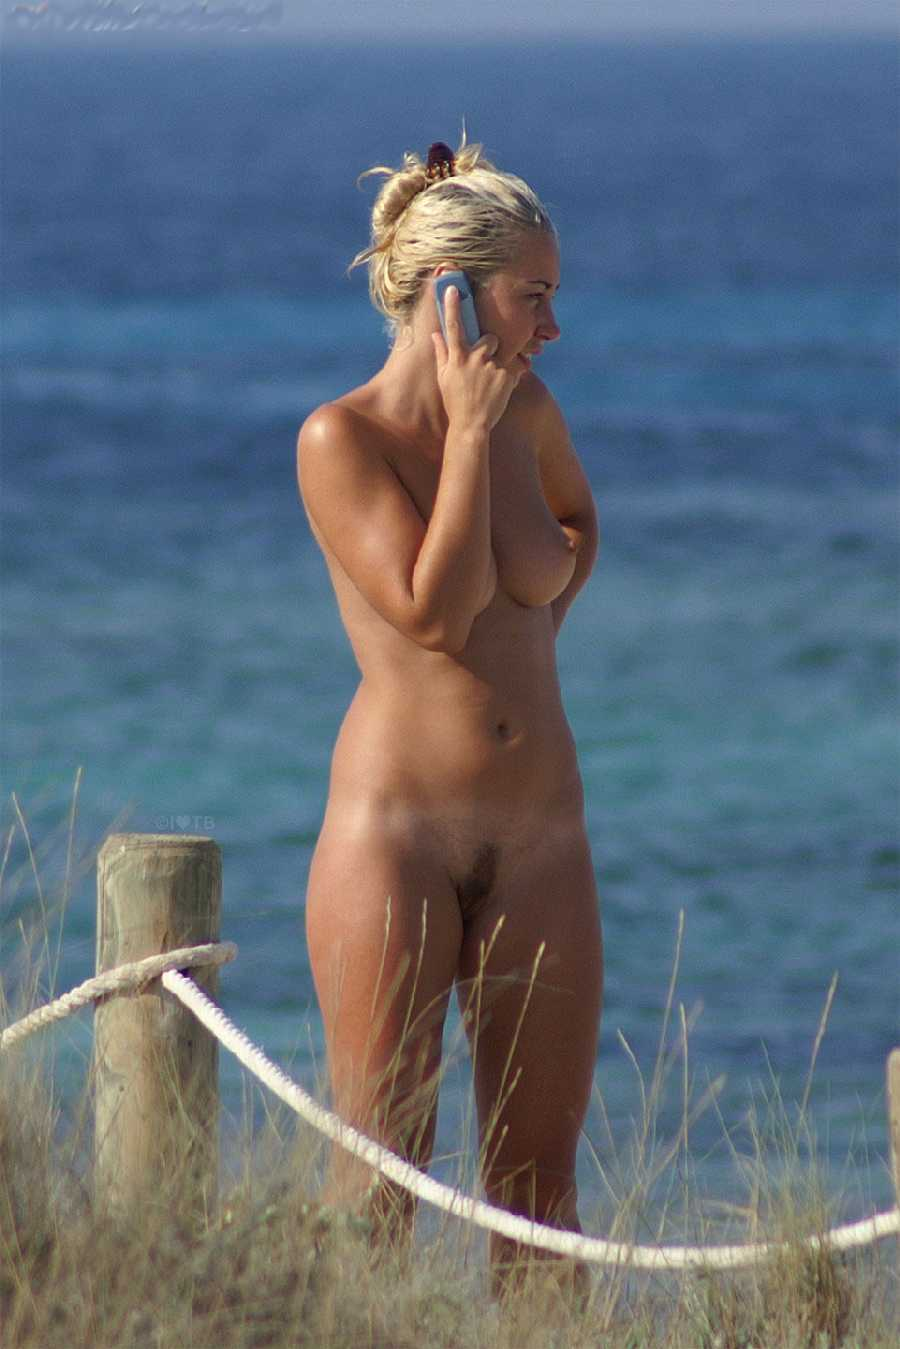 koktebel nudist beach